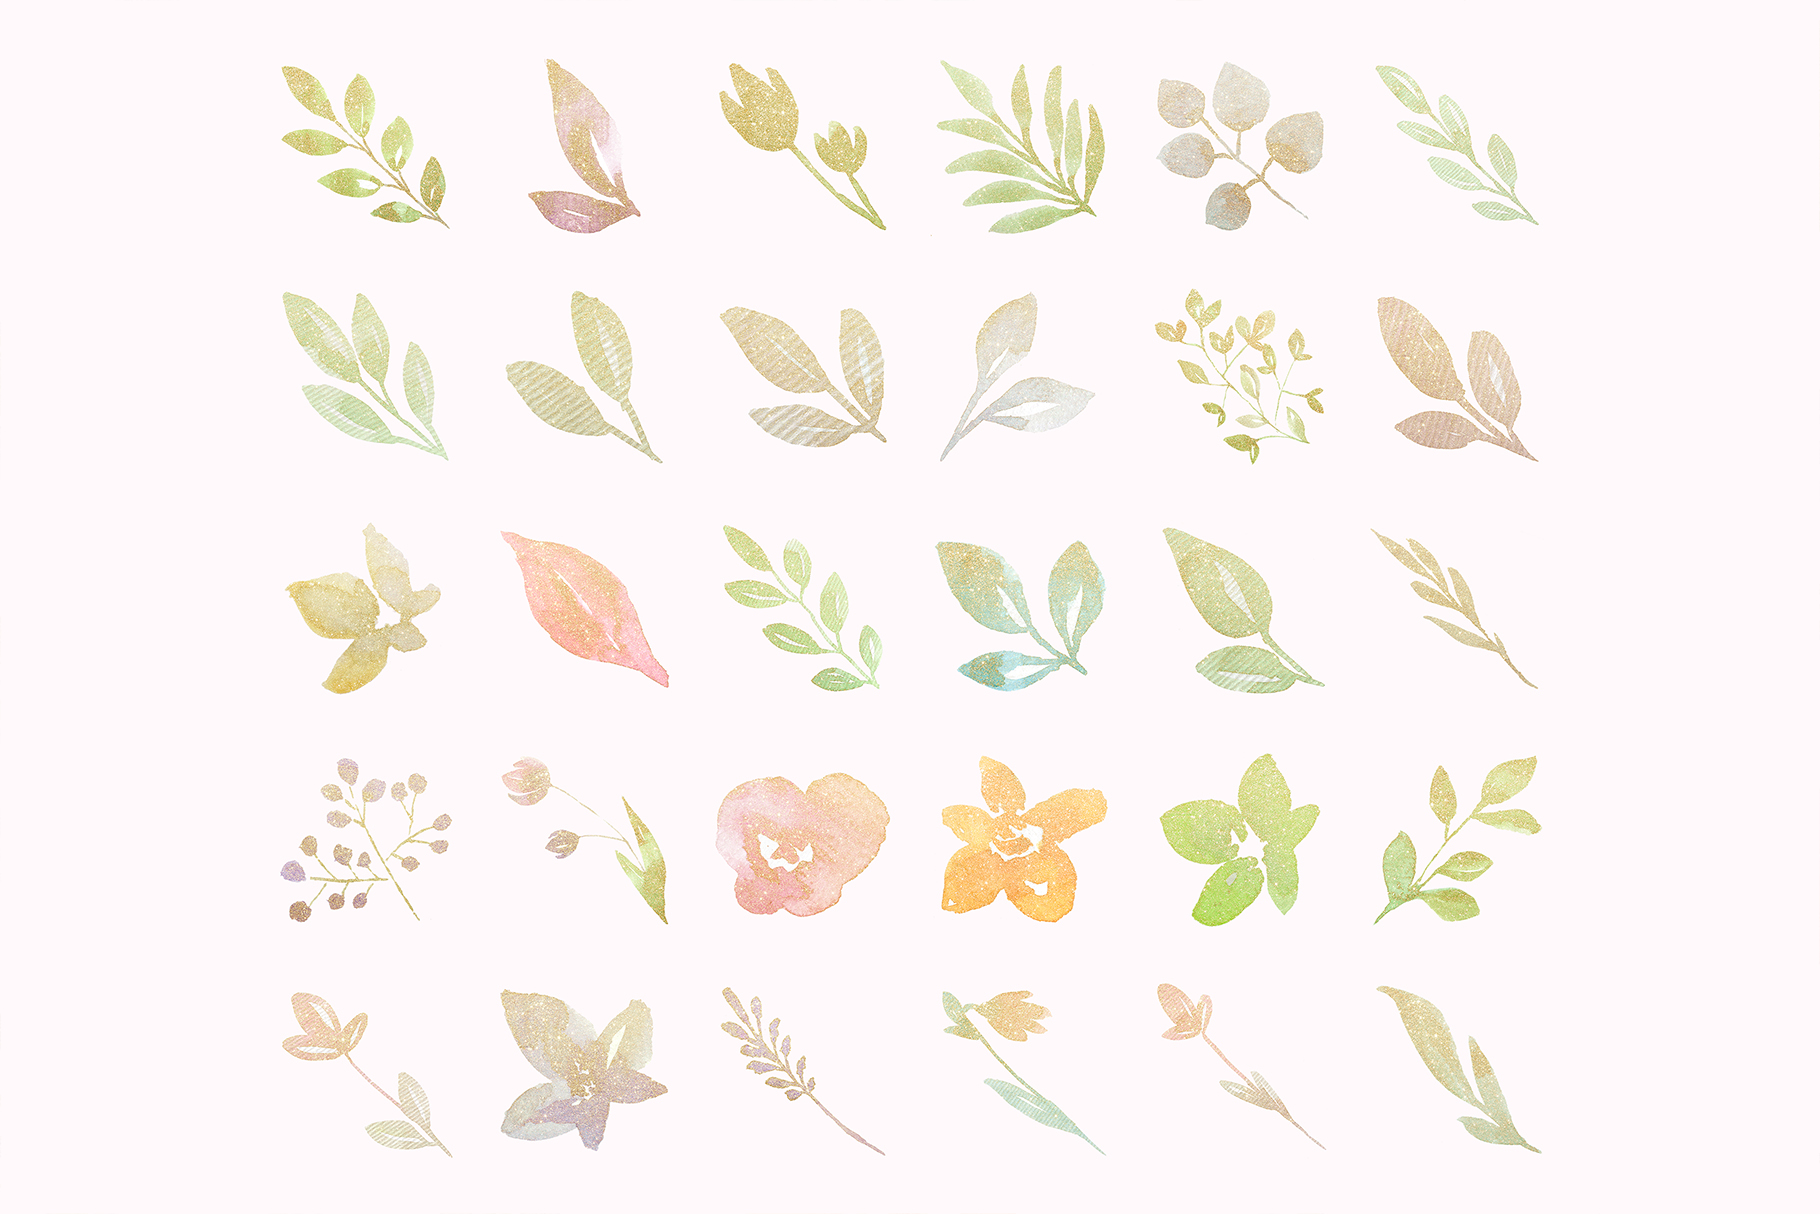 Gold glitter pastel watercolor flowers, gold glitter leaves example image 2